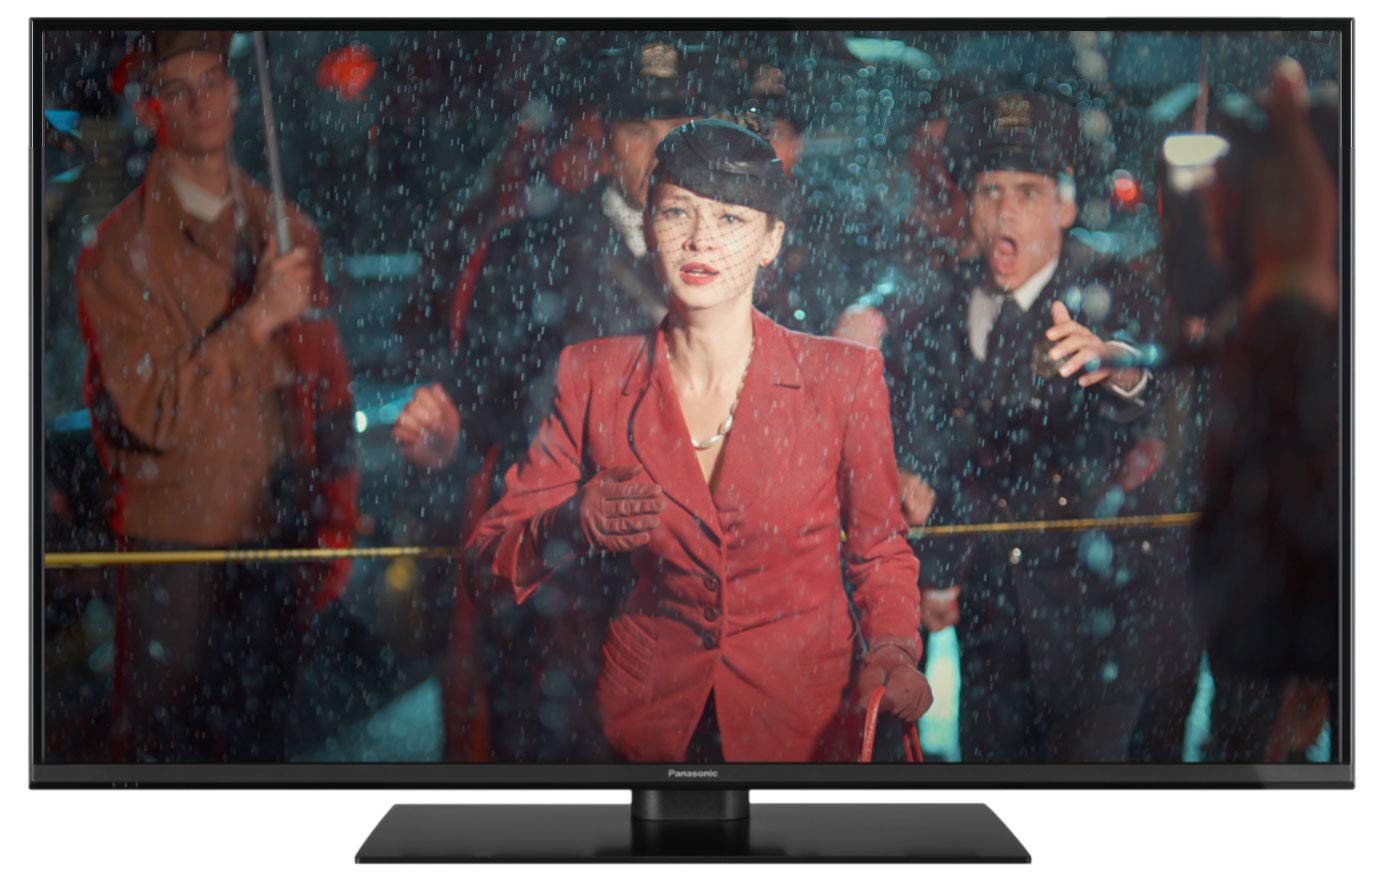 Panasonic LCD LED 49 TX-49FX550E 4K Ultra HD Multi HDR Smart TV: 372.91: Amazon.es: Electrónica